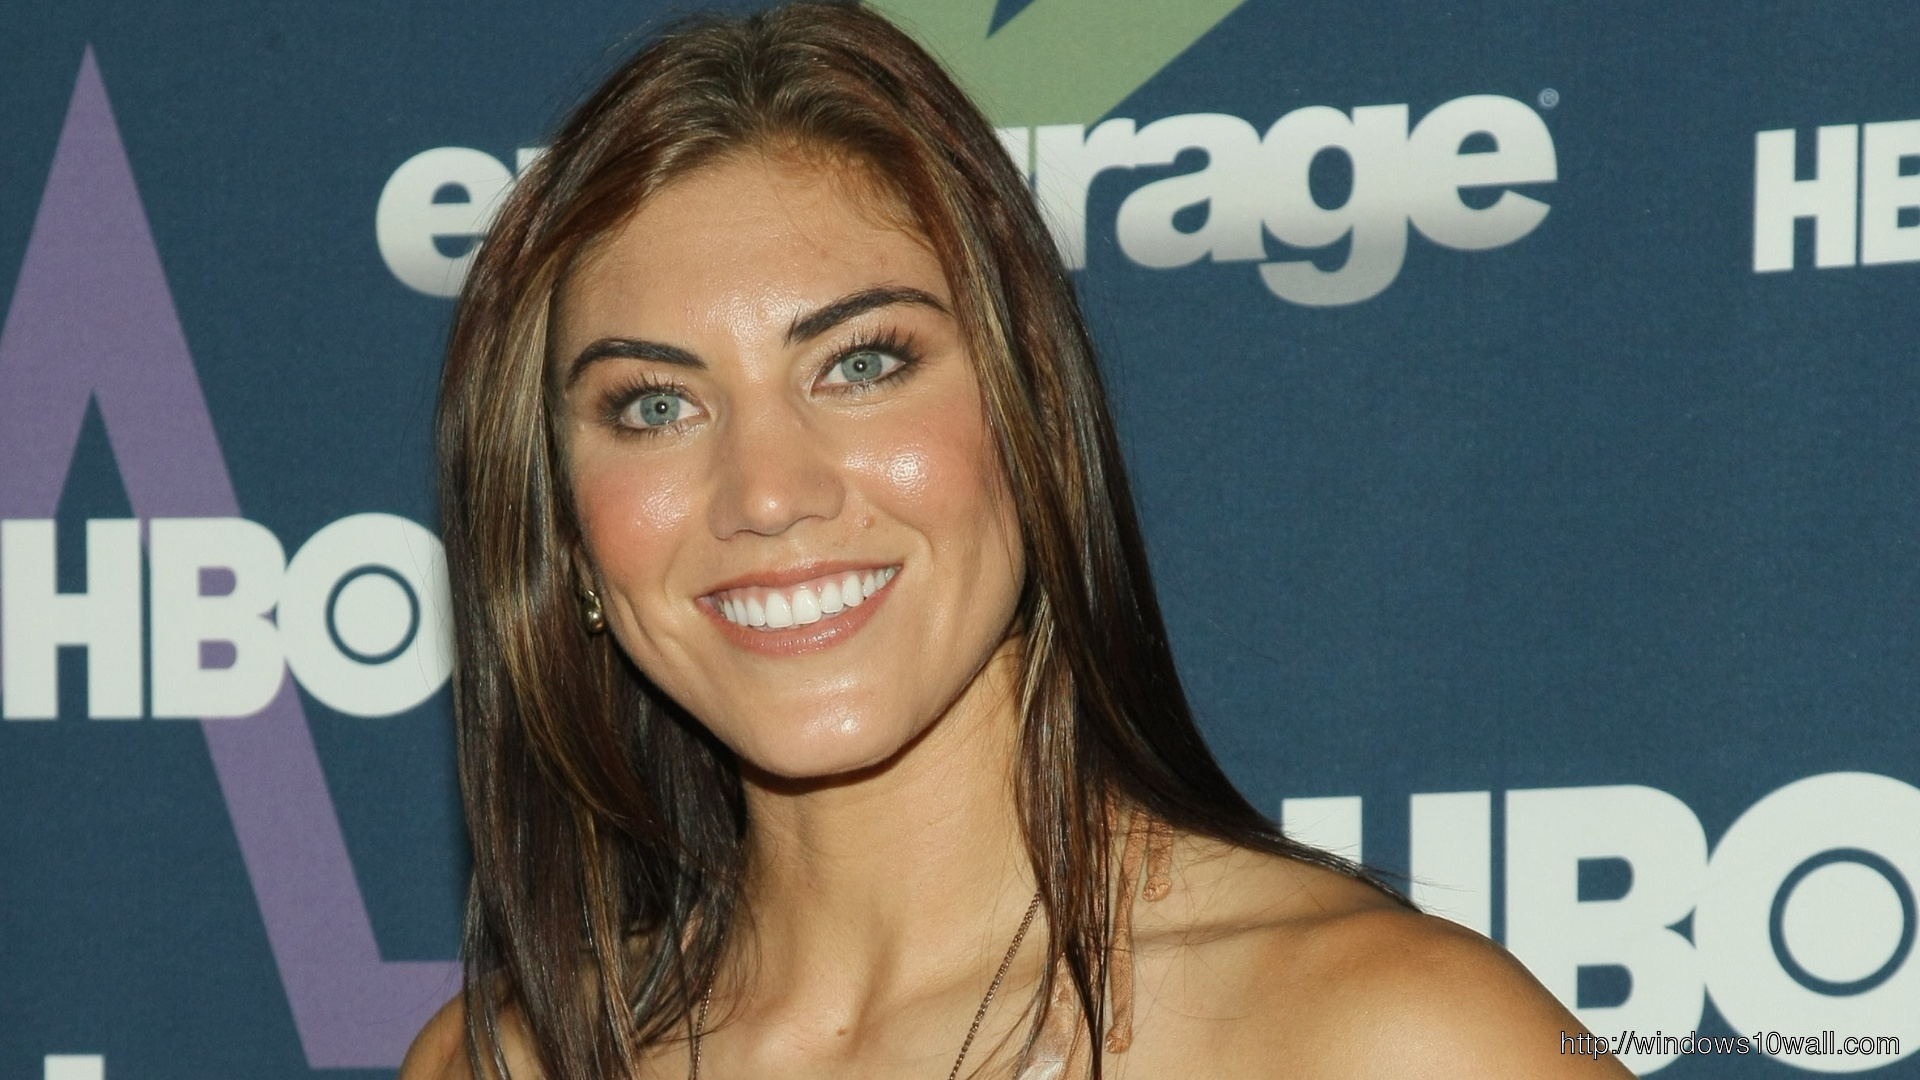 Hope Solo Smiling Background Wallpaper